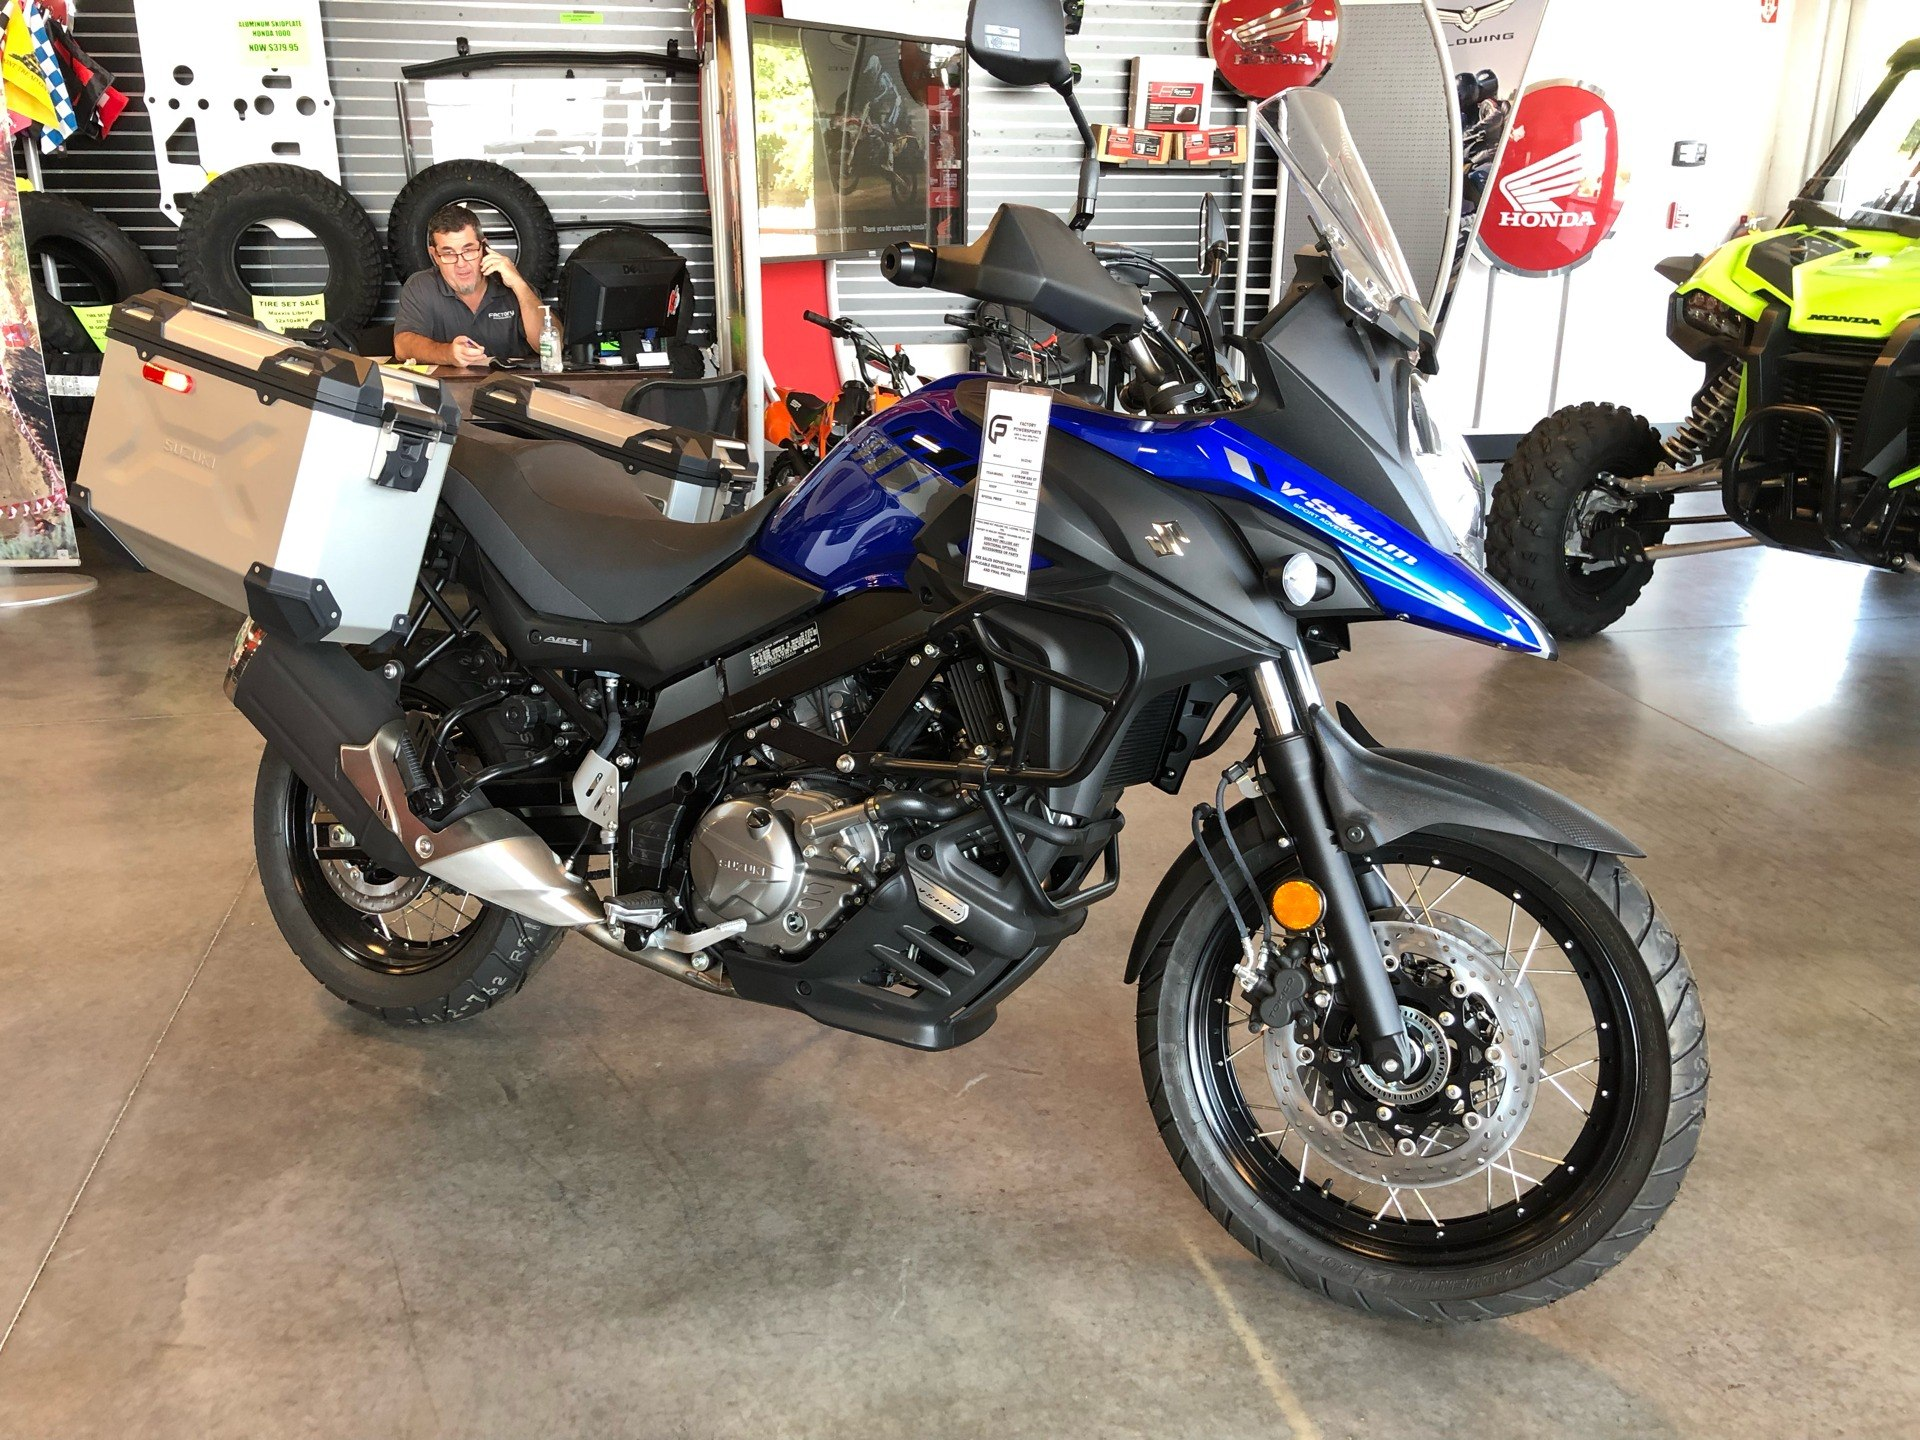 2020 Suzuki V-Strom 650XT Adventure in Saint George, Utah - Photo 5